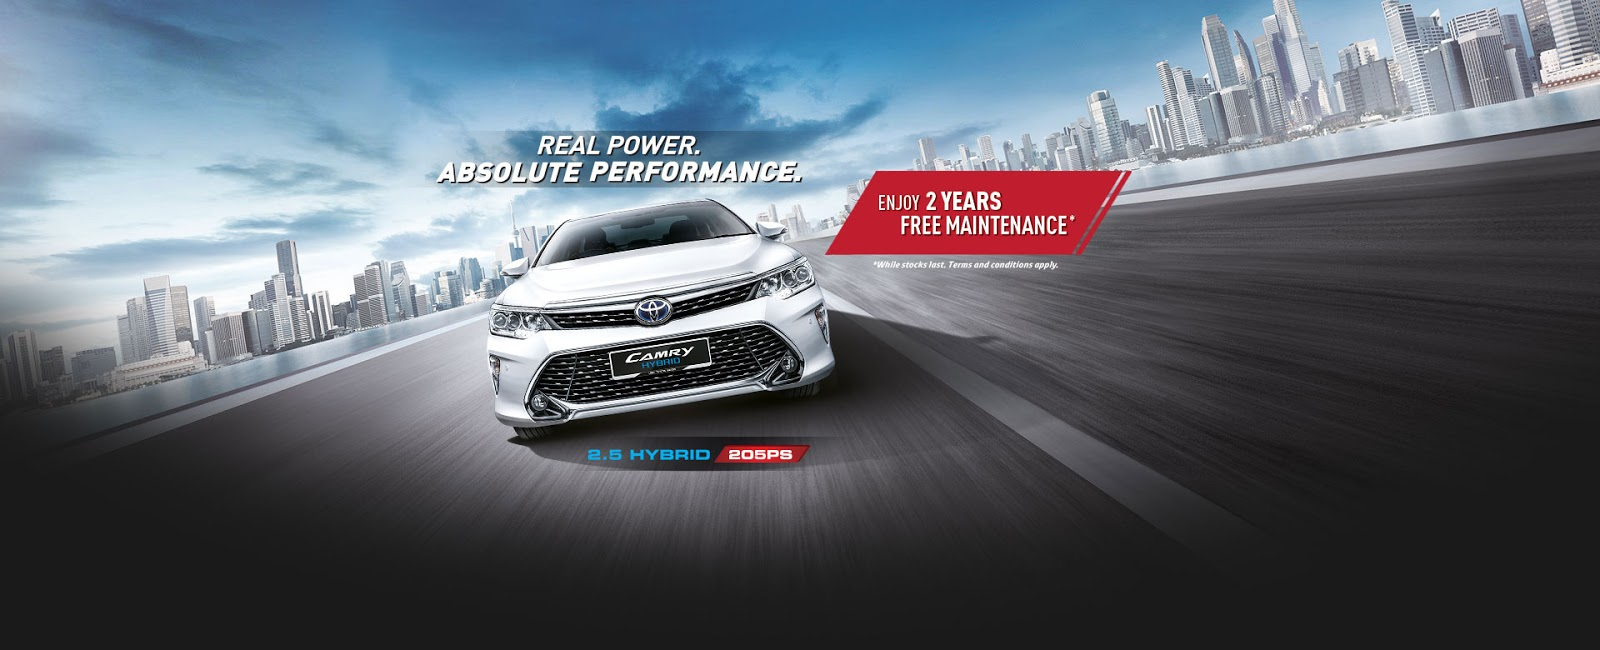 Latest july raya promotion above and below enjoy 2 years free maintenance valid till 31 july 2015